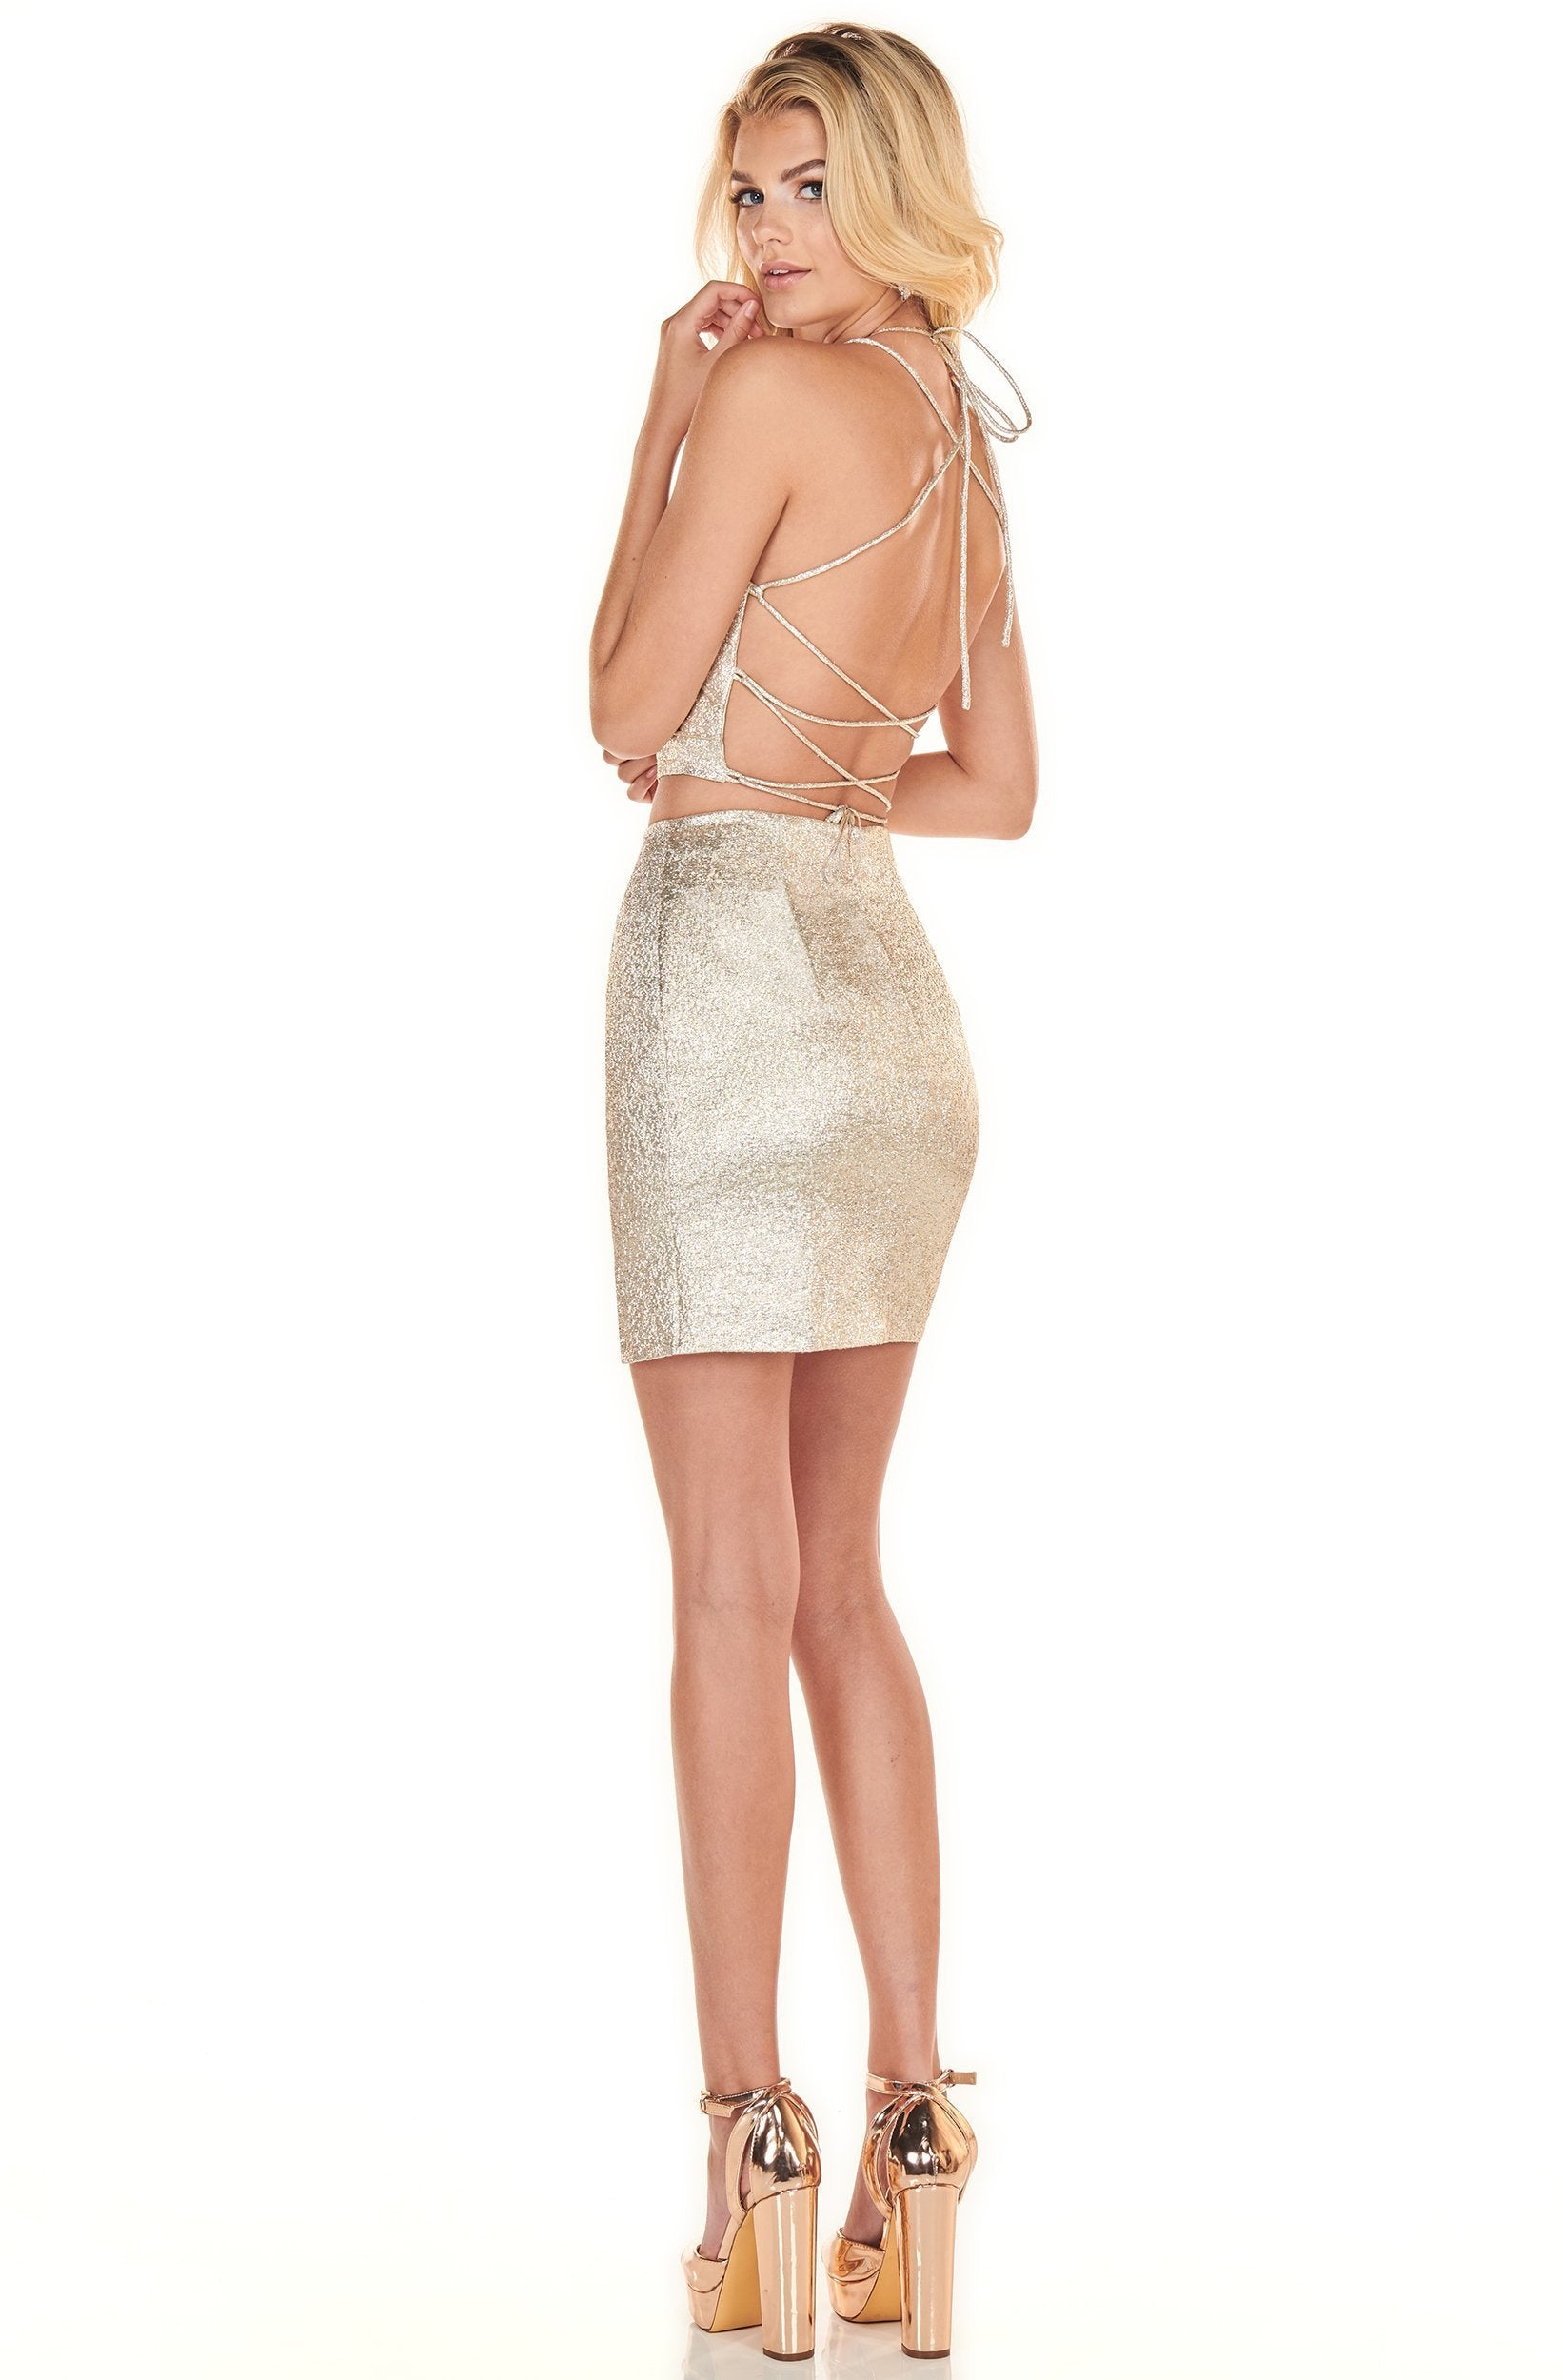 Rachel Allan Shorts - 4081 Two-Piece Metallic Short Sheath Dress In Gold